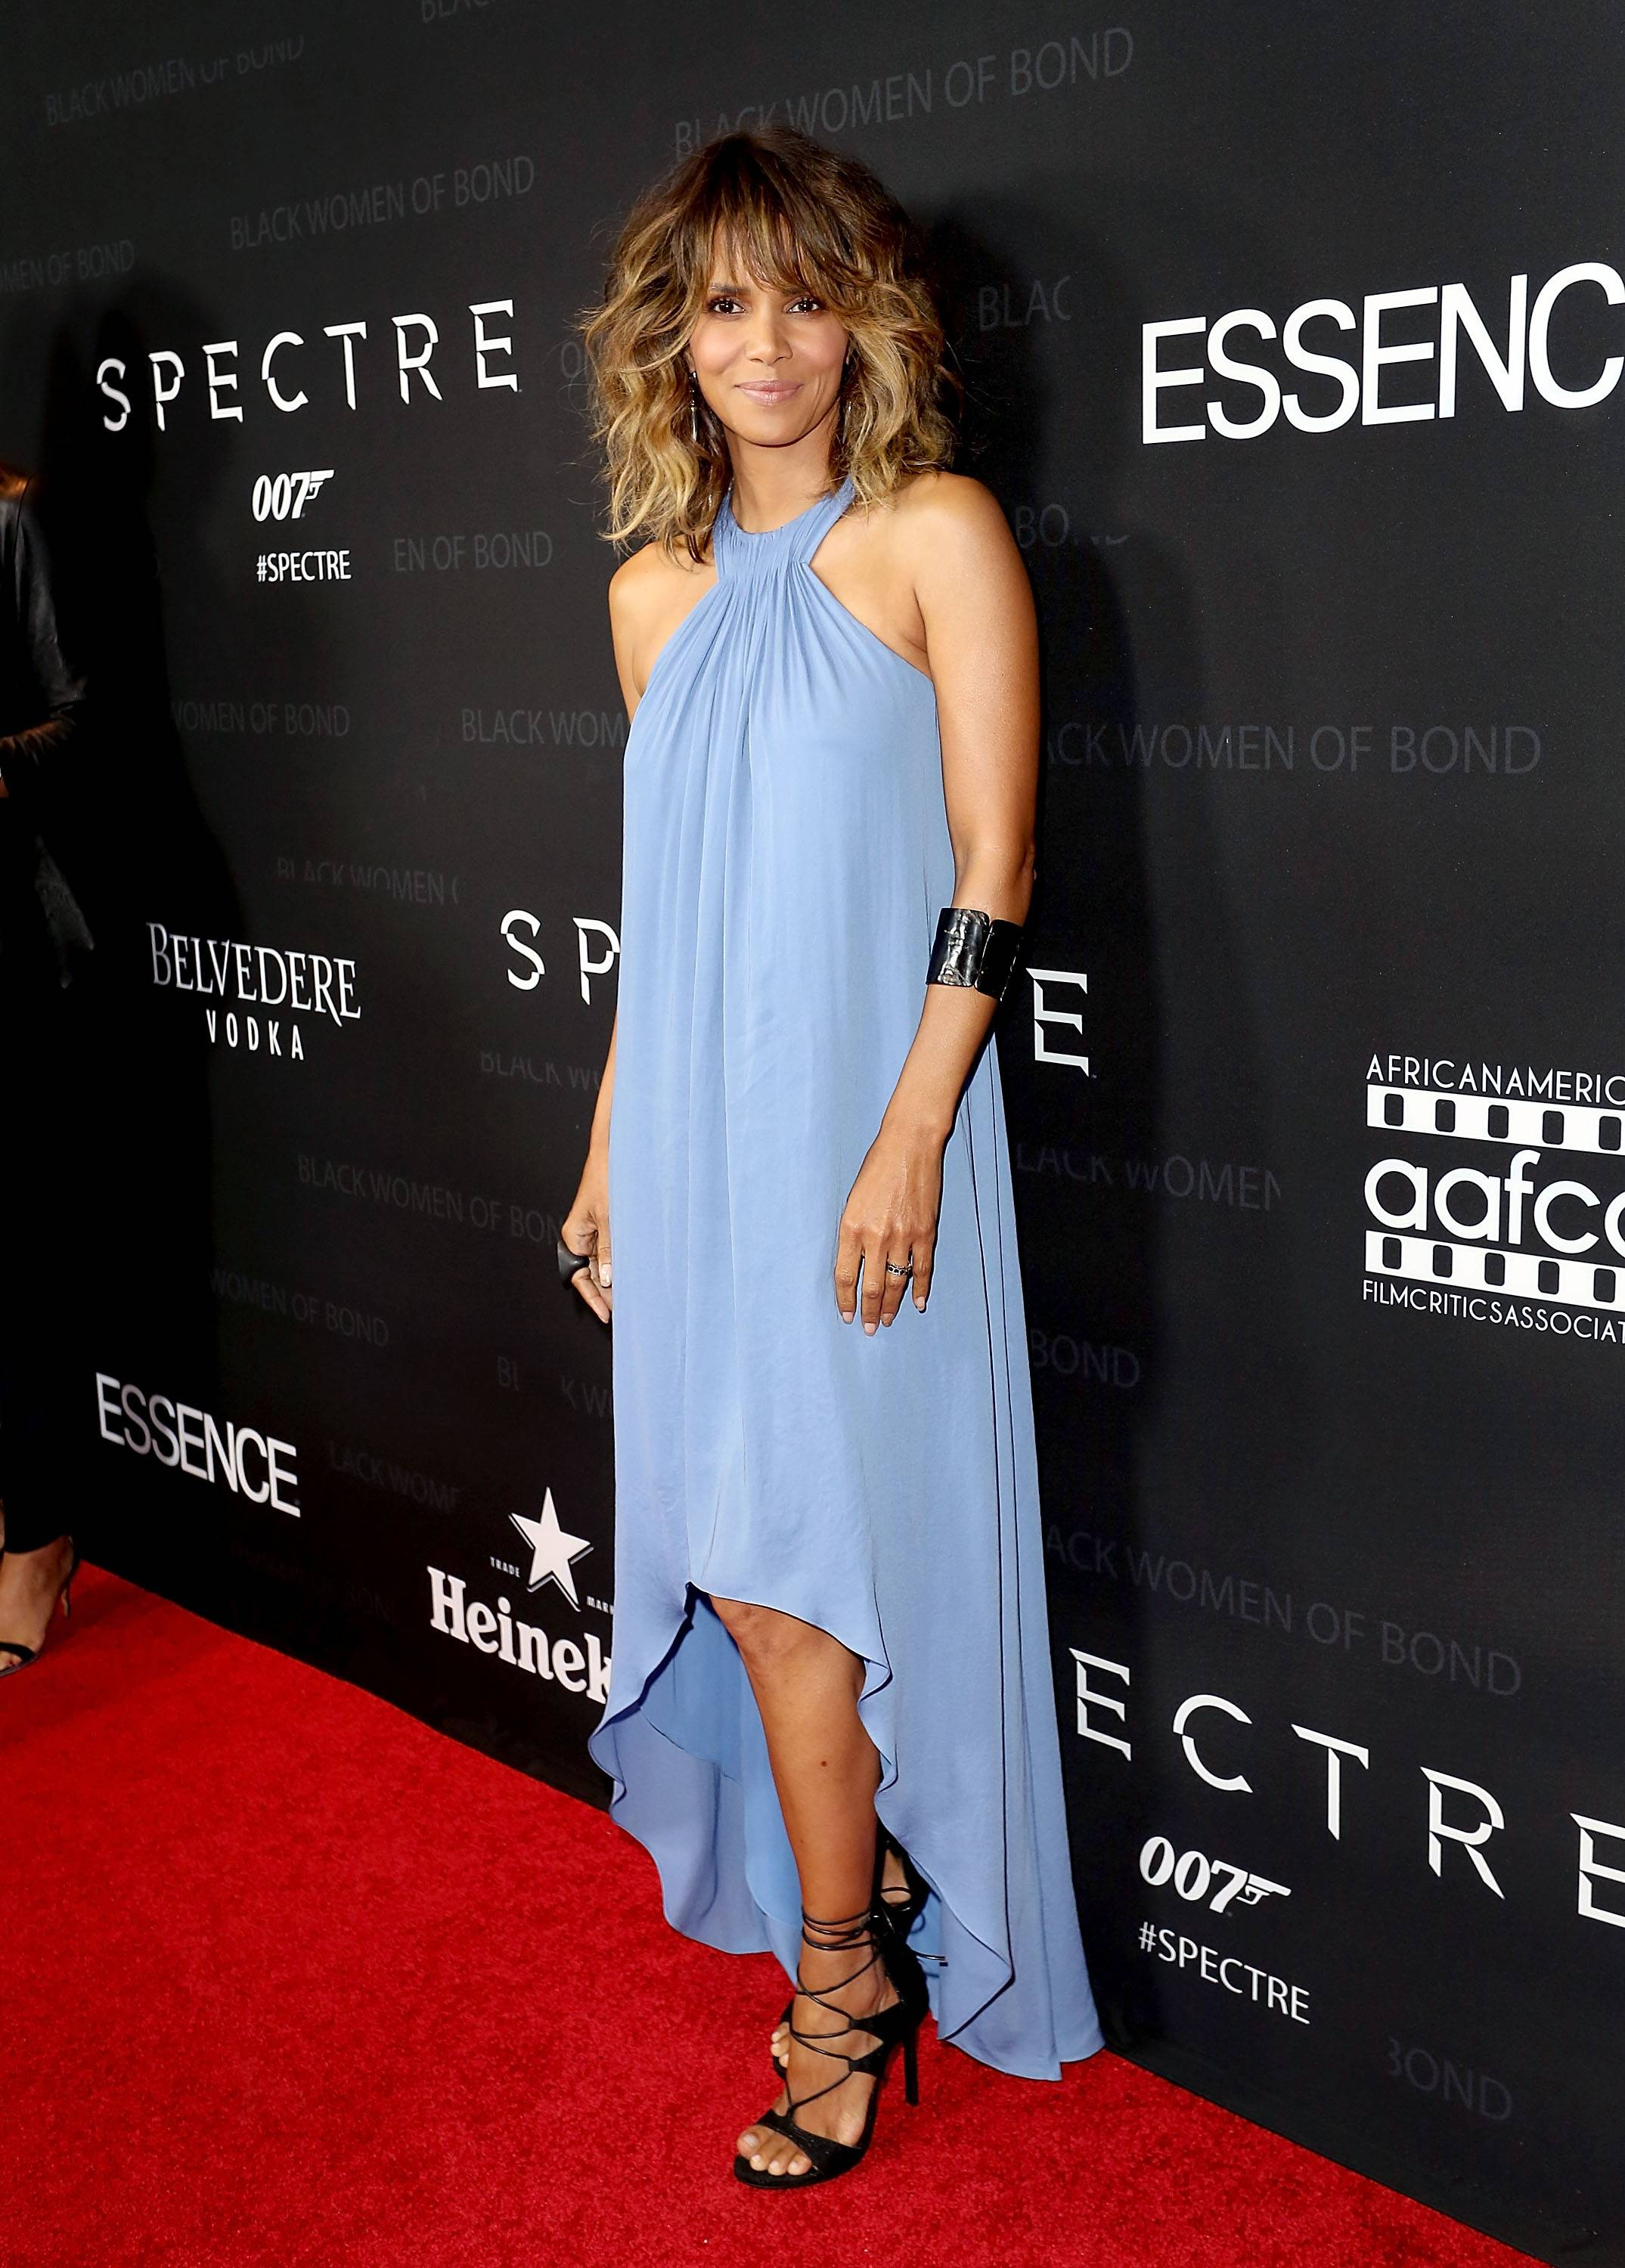 110515-breal-style-beauty-Best-Dressed-of-the-Week-Halle-Berry-1.jpg